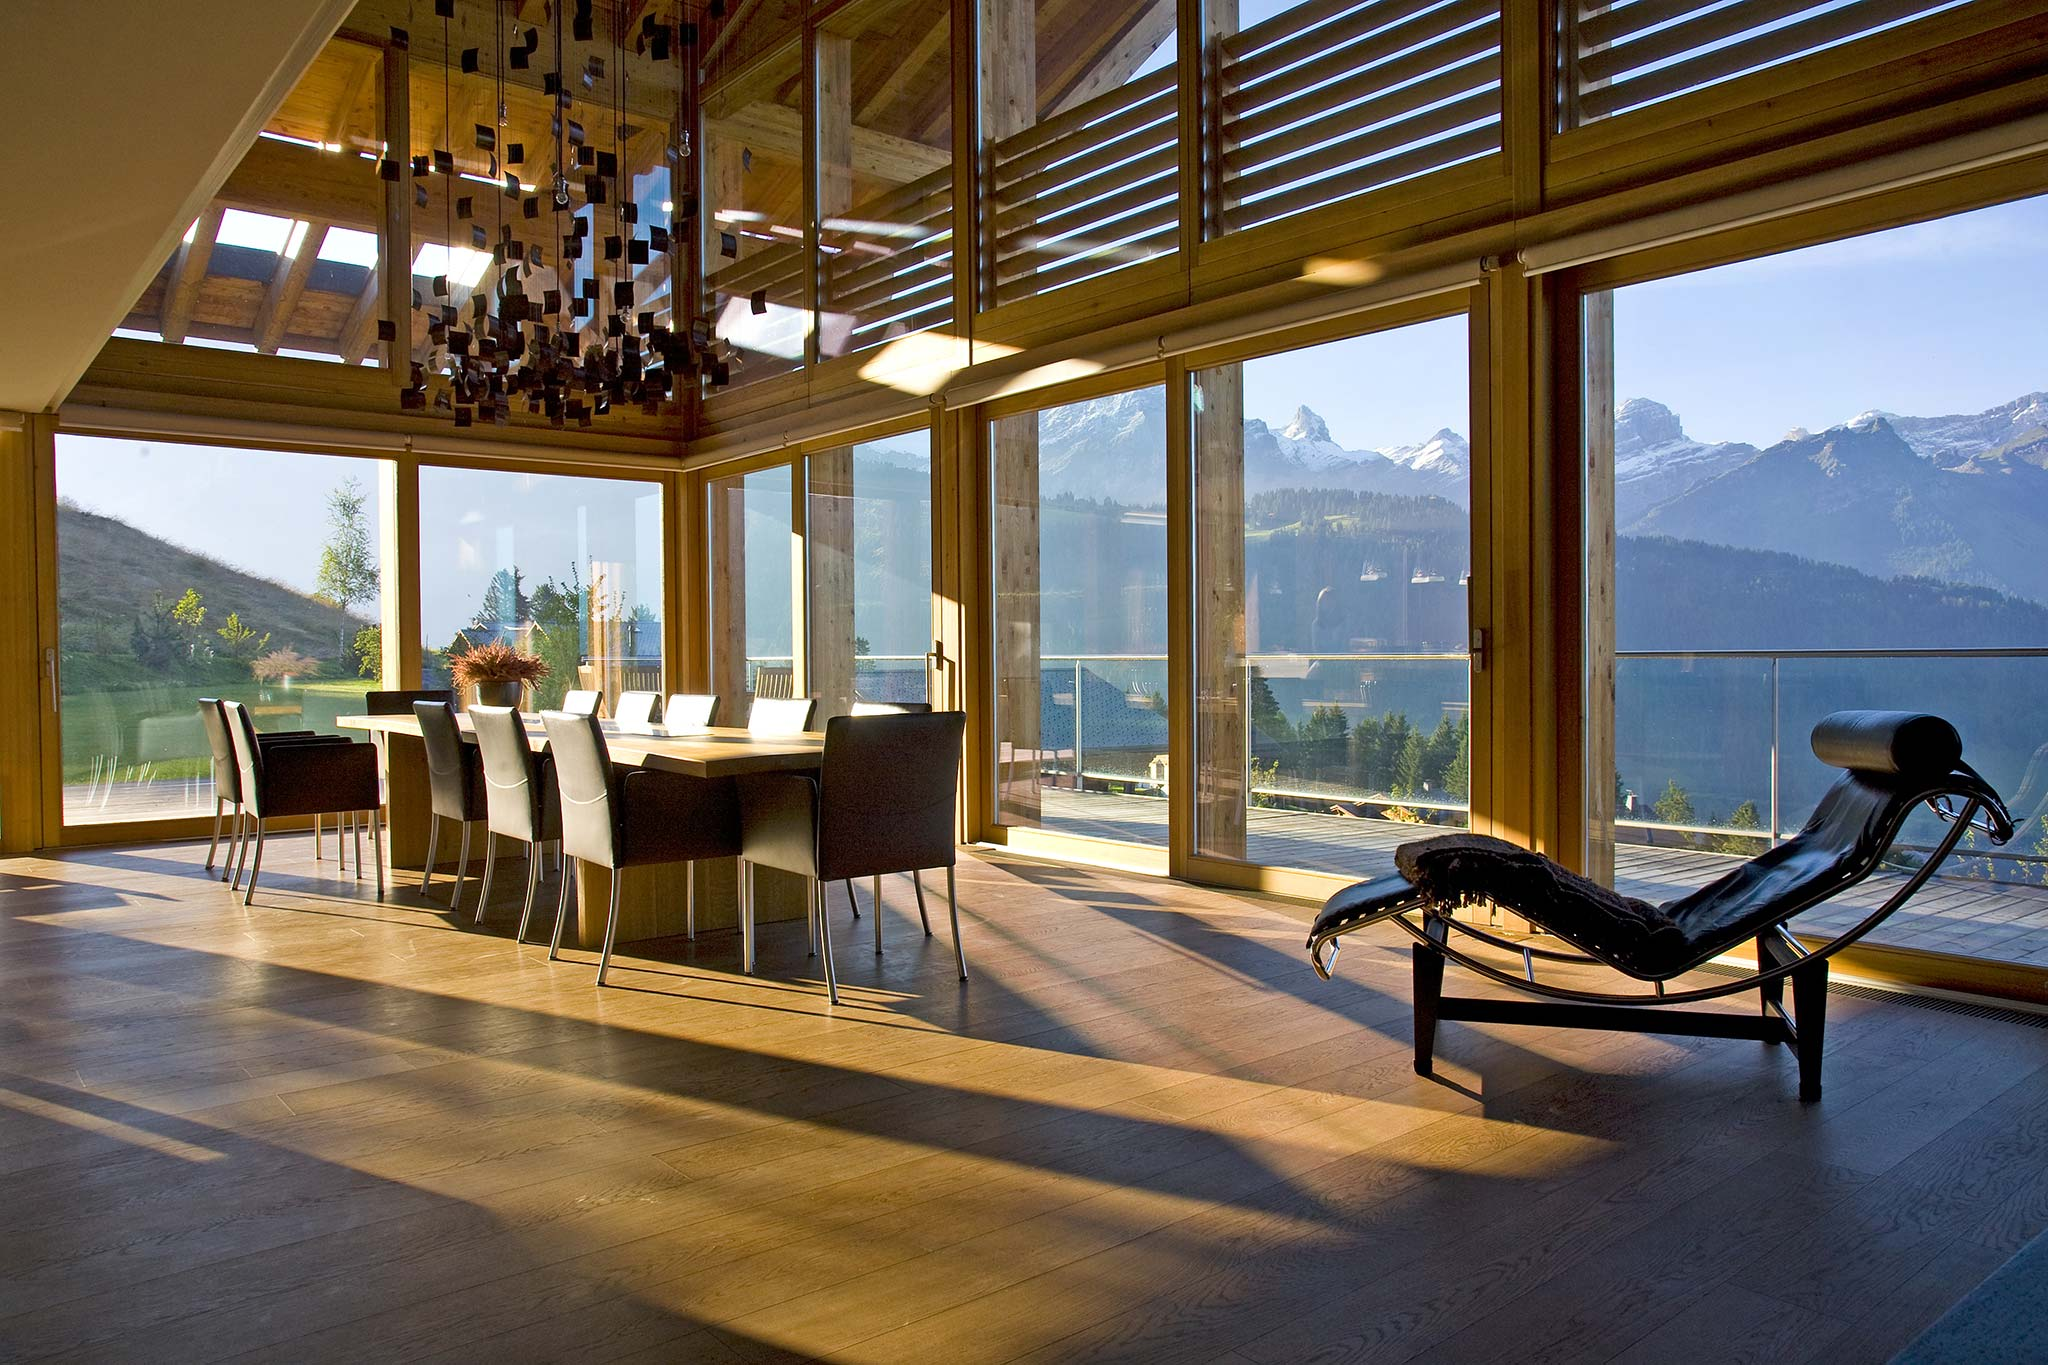 Modern Swiss Chalet Interior Design | Callender Howorth